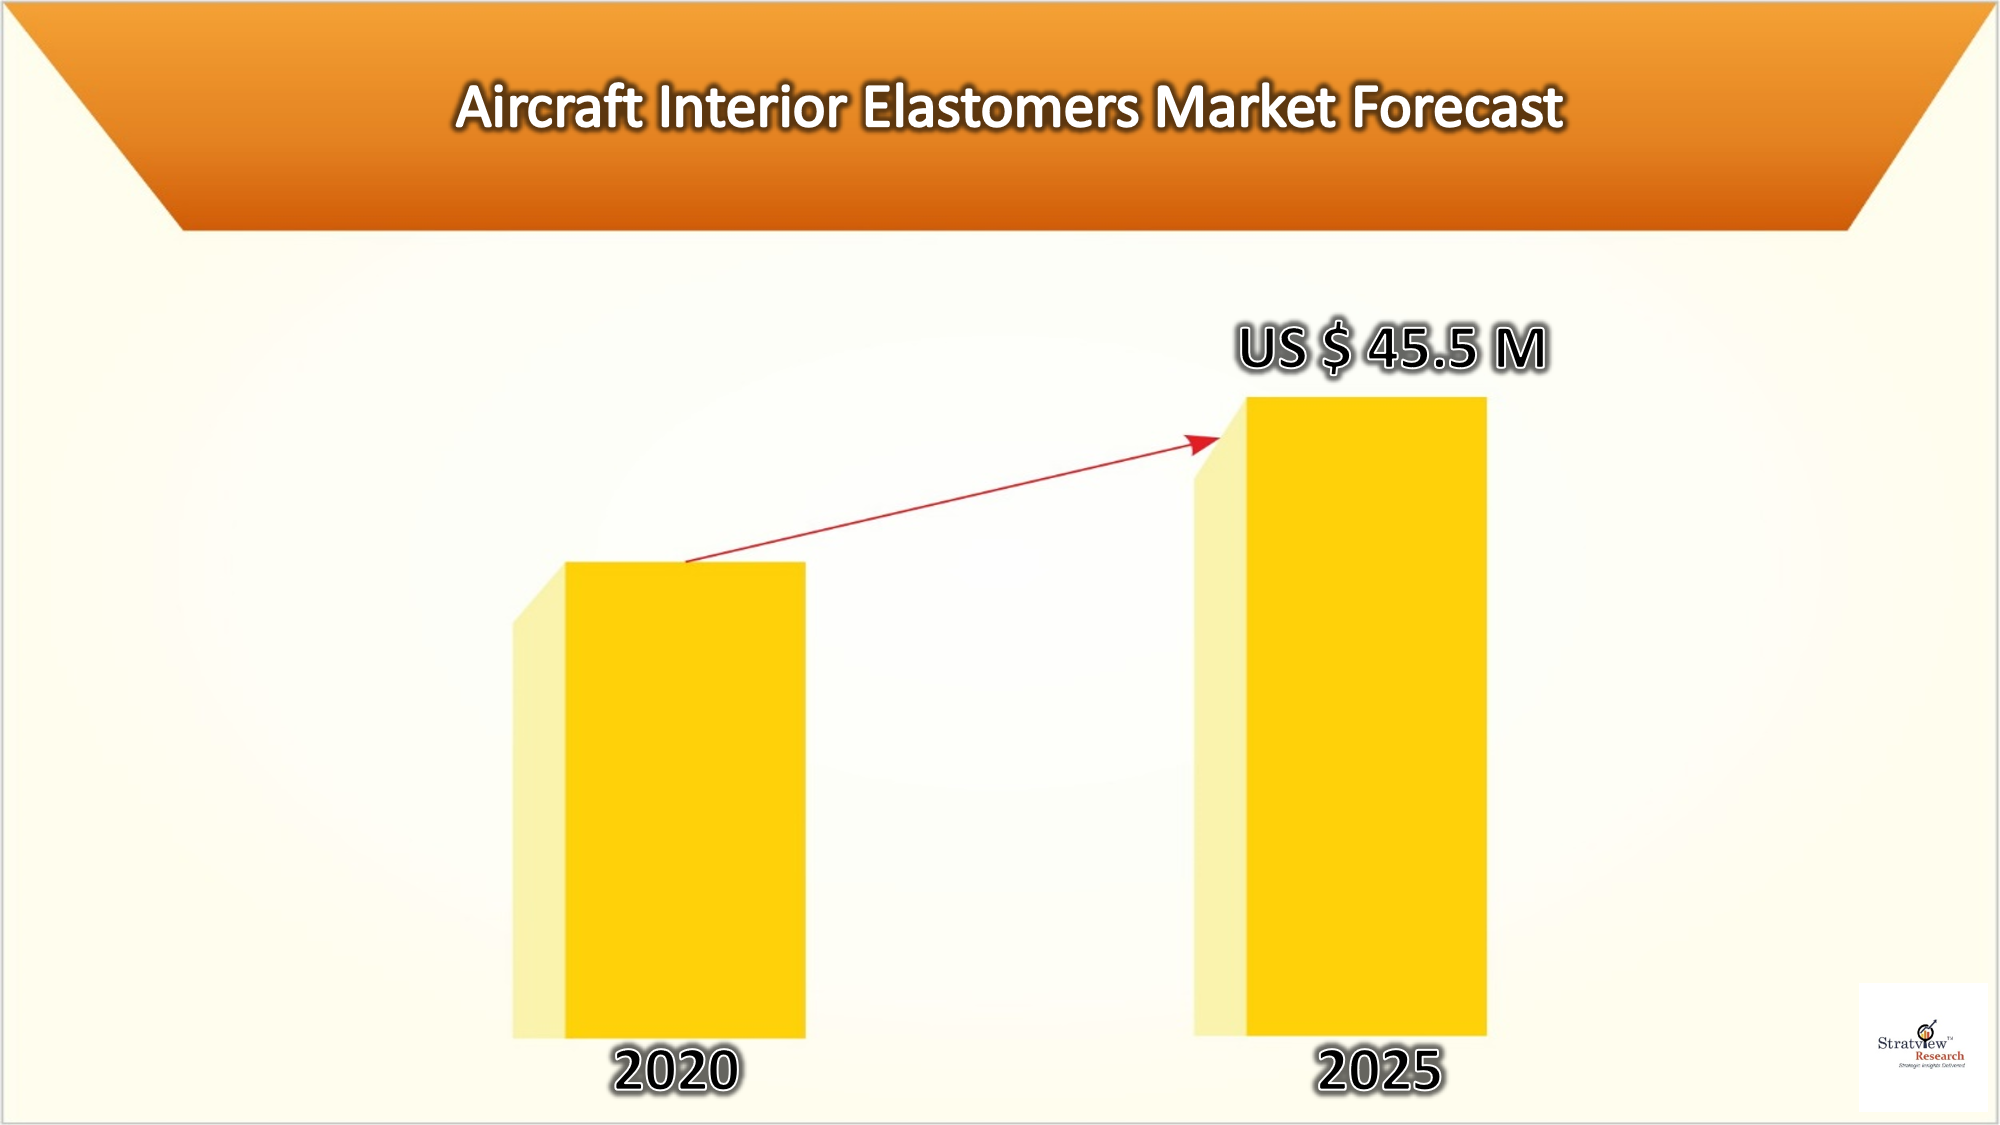 Aircraft Interior Elastomers Market